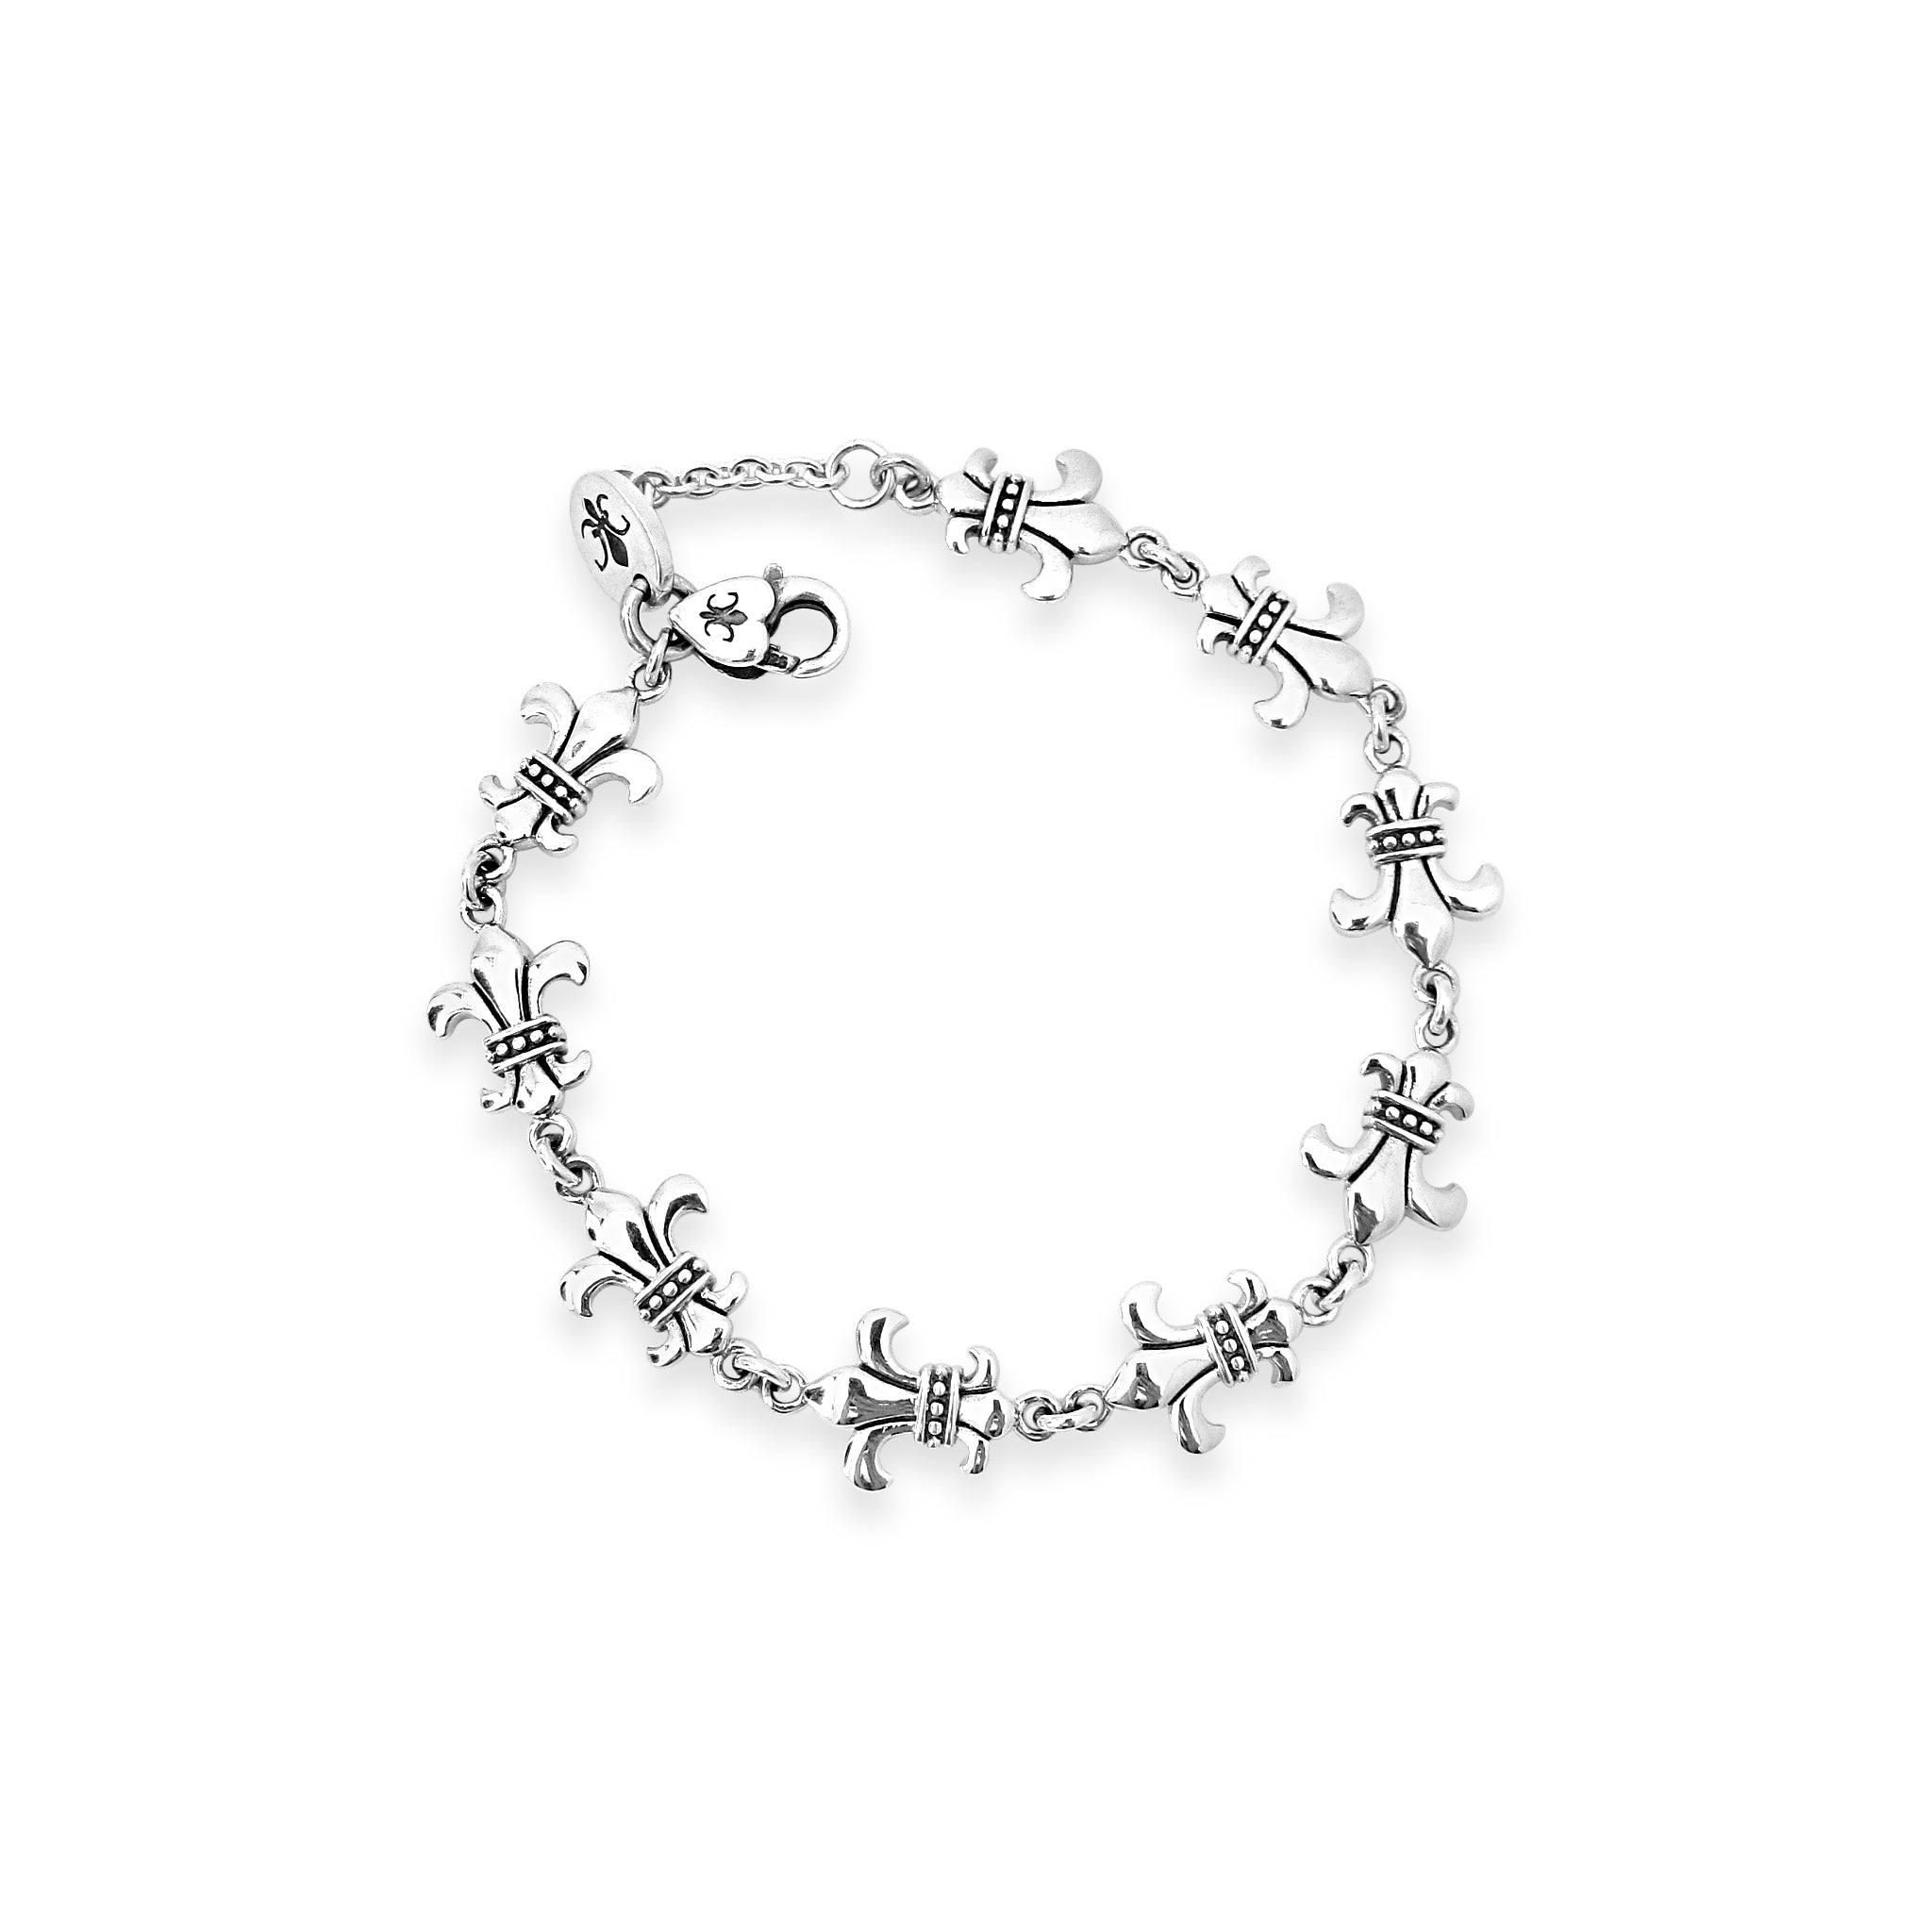 Strength & Courage Fleur de Lis Dainty Bracelet